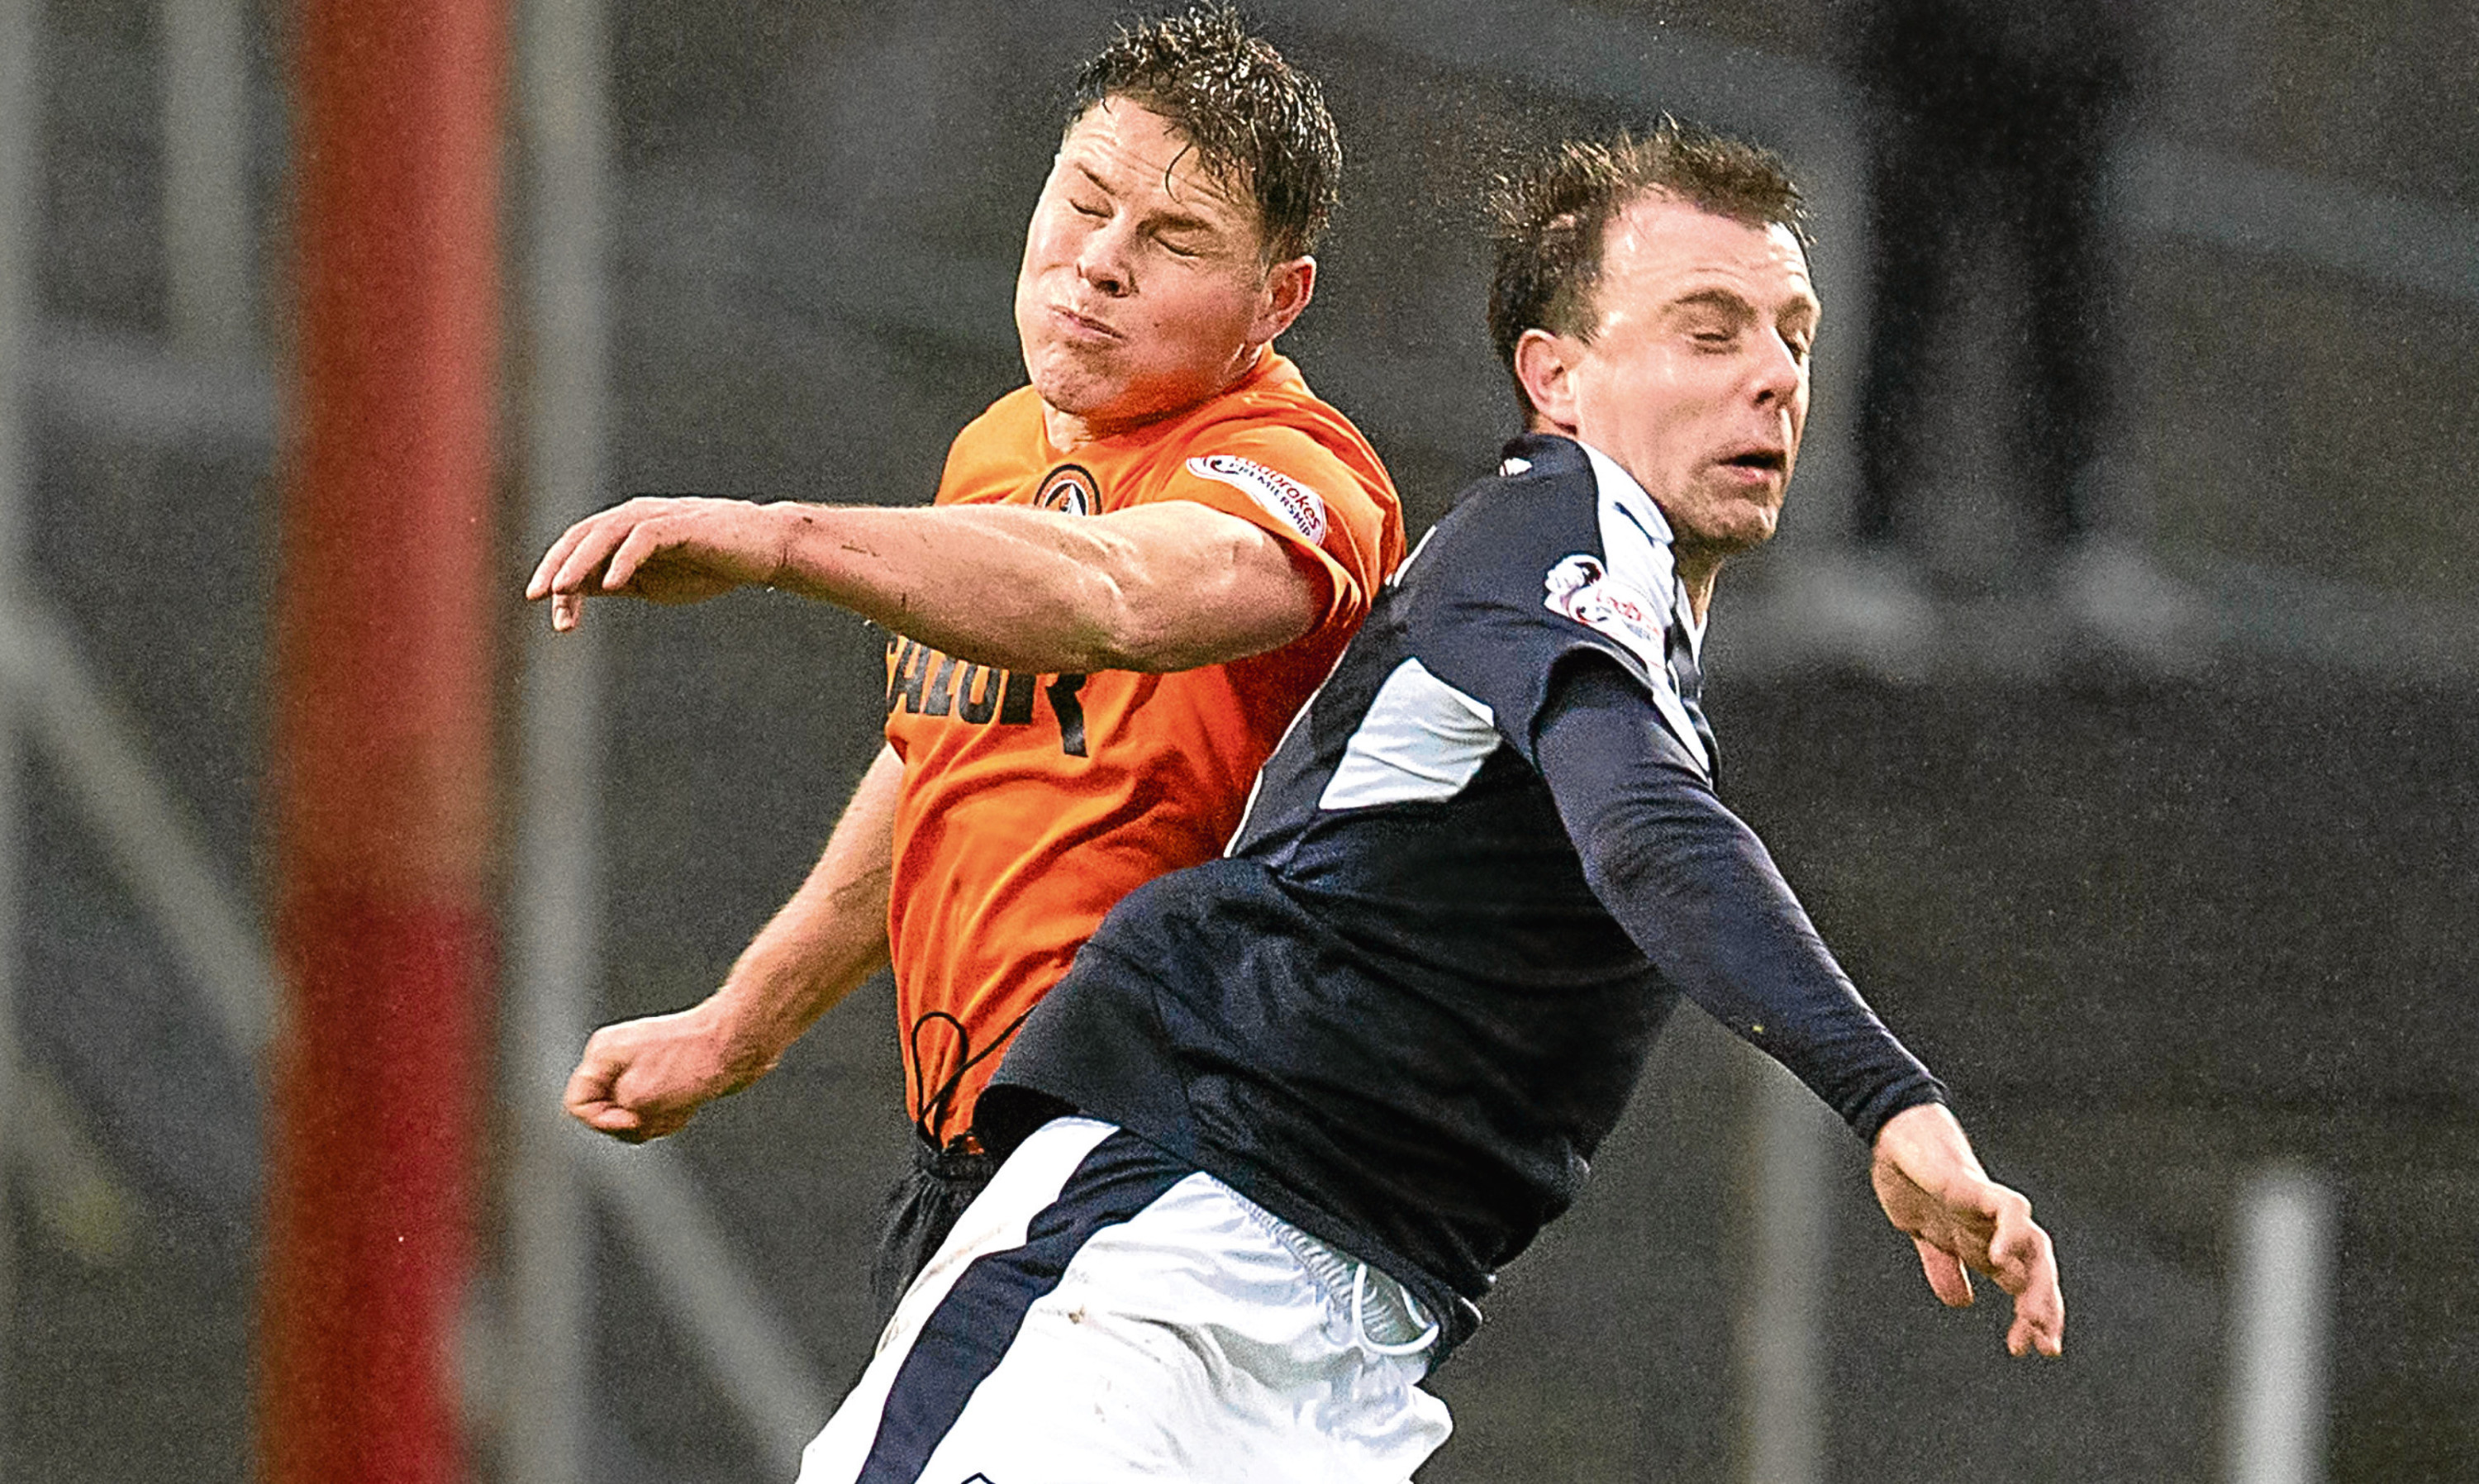 John Rankin and Paul McGowan get stuck in during one of last seasons Dundee derbies, the best fixture in Scottish football, according to Jim.